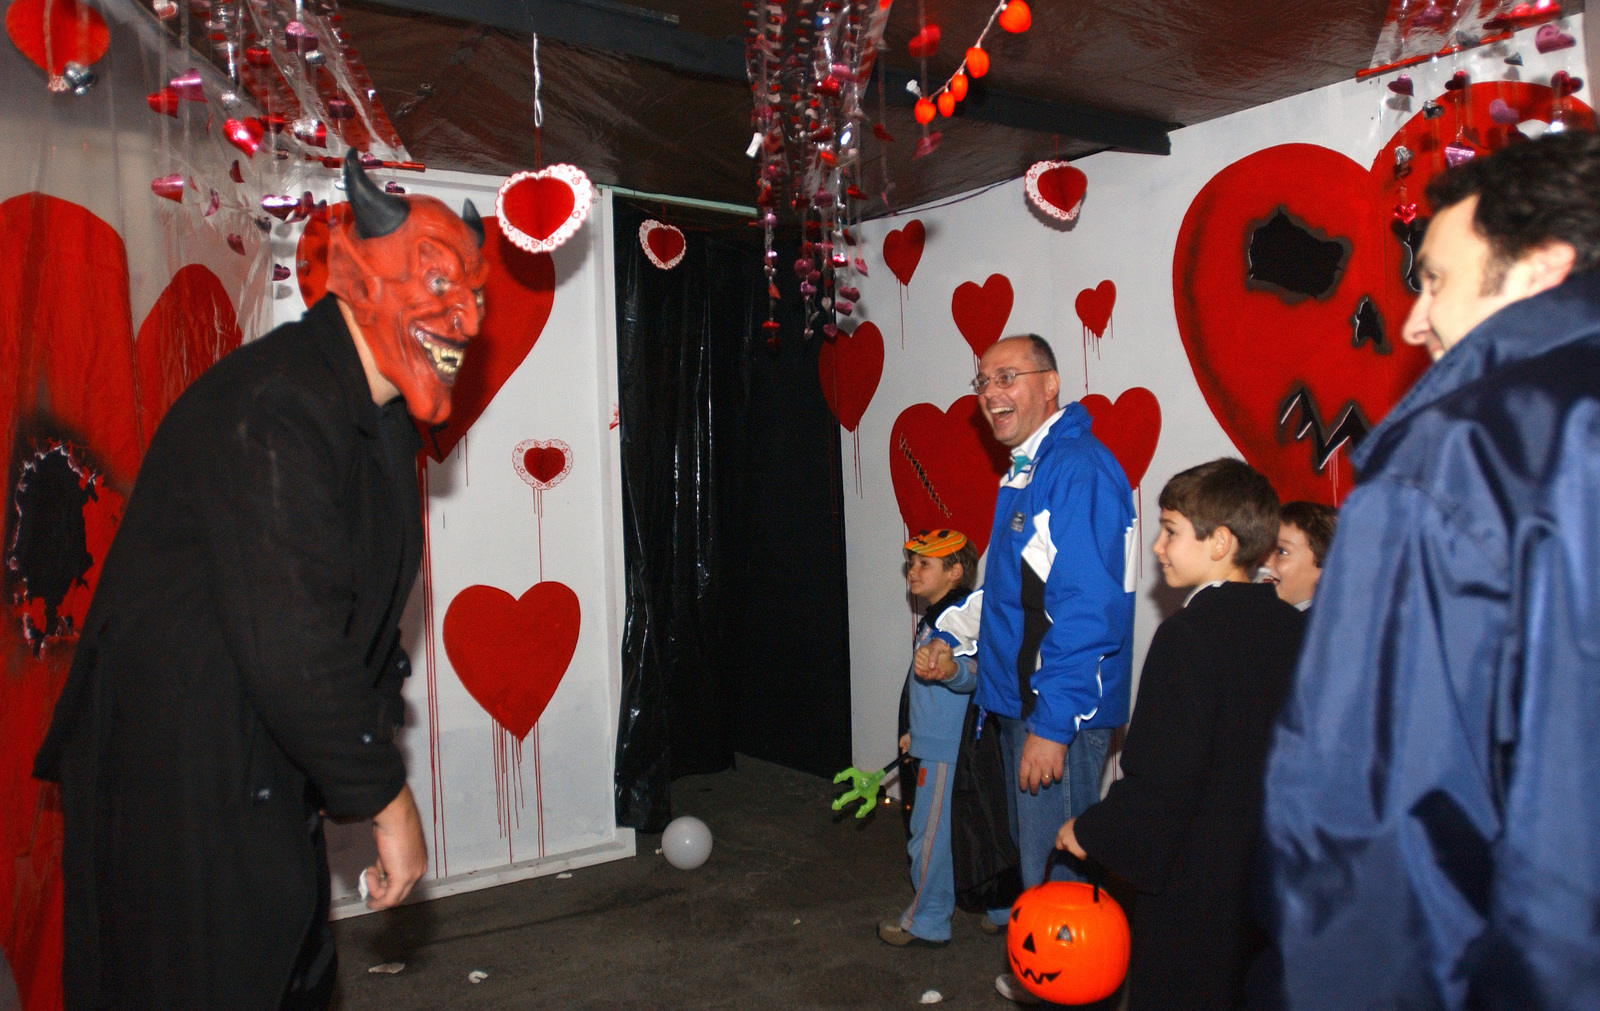 Community members get together to celebrate Halloween with their friends and family at the Haunted House at Aviano AB, Italy, on Oct. 30, 2004. Volunteers from the base helped build a Haunted House that consists of different themes for each room. (USAF PHOTO by AIRMAN 1ST Class Desiree Hayden) (Released)